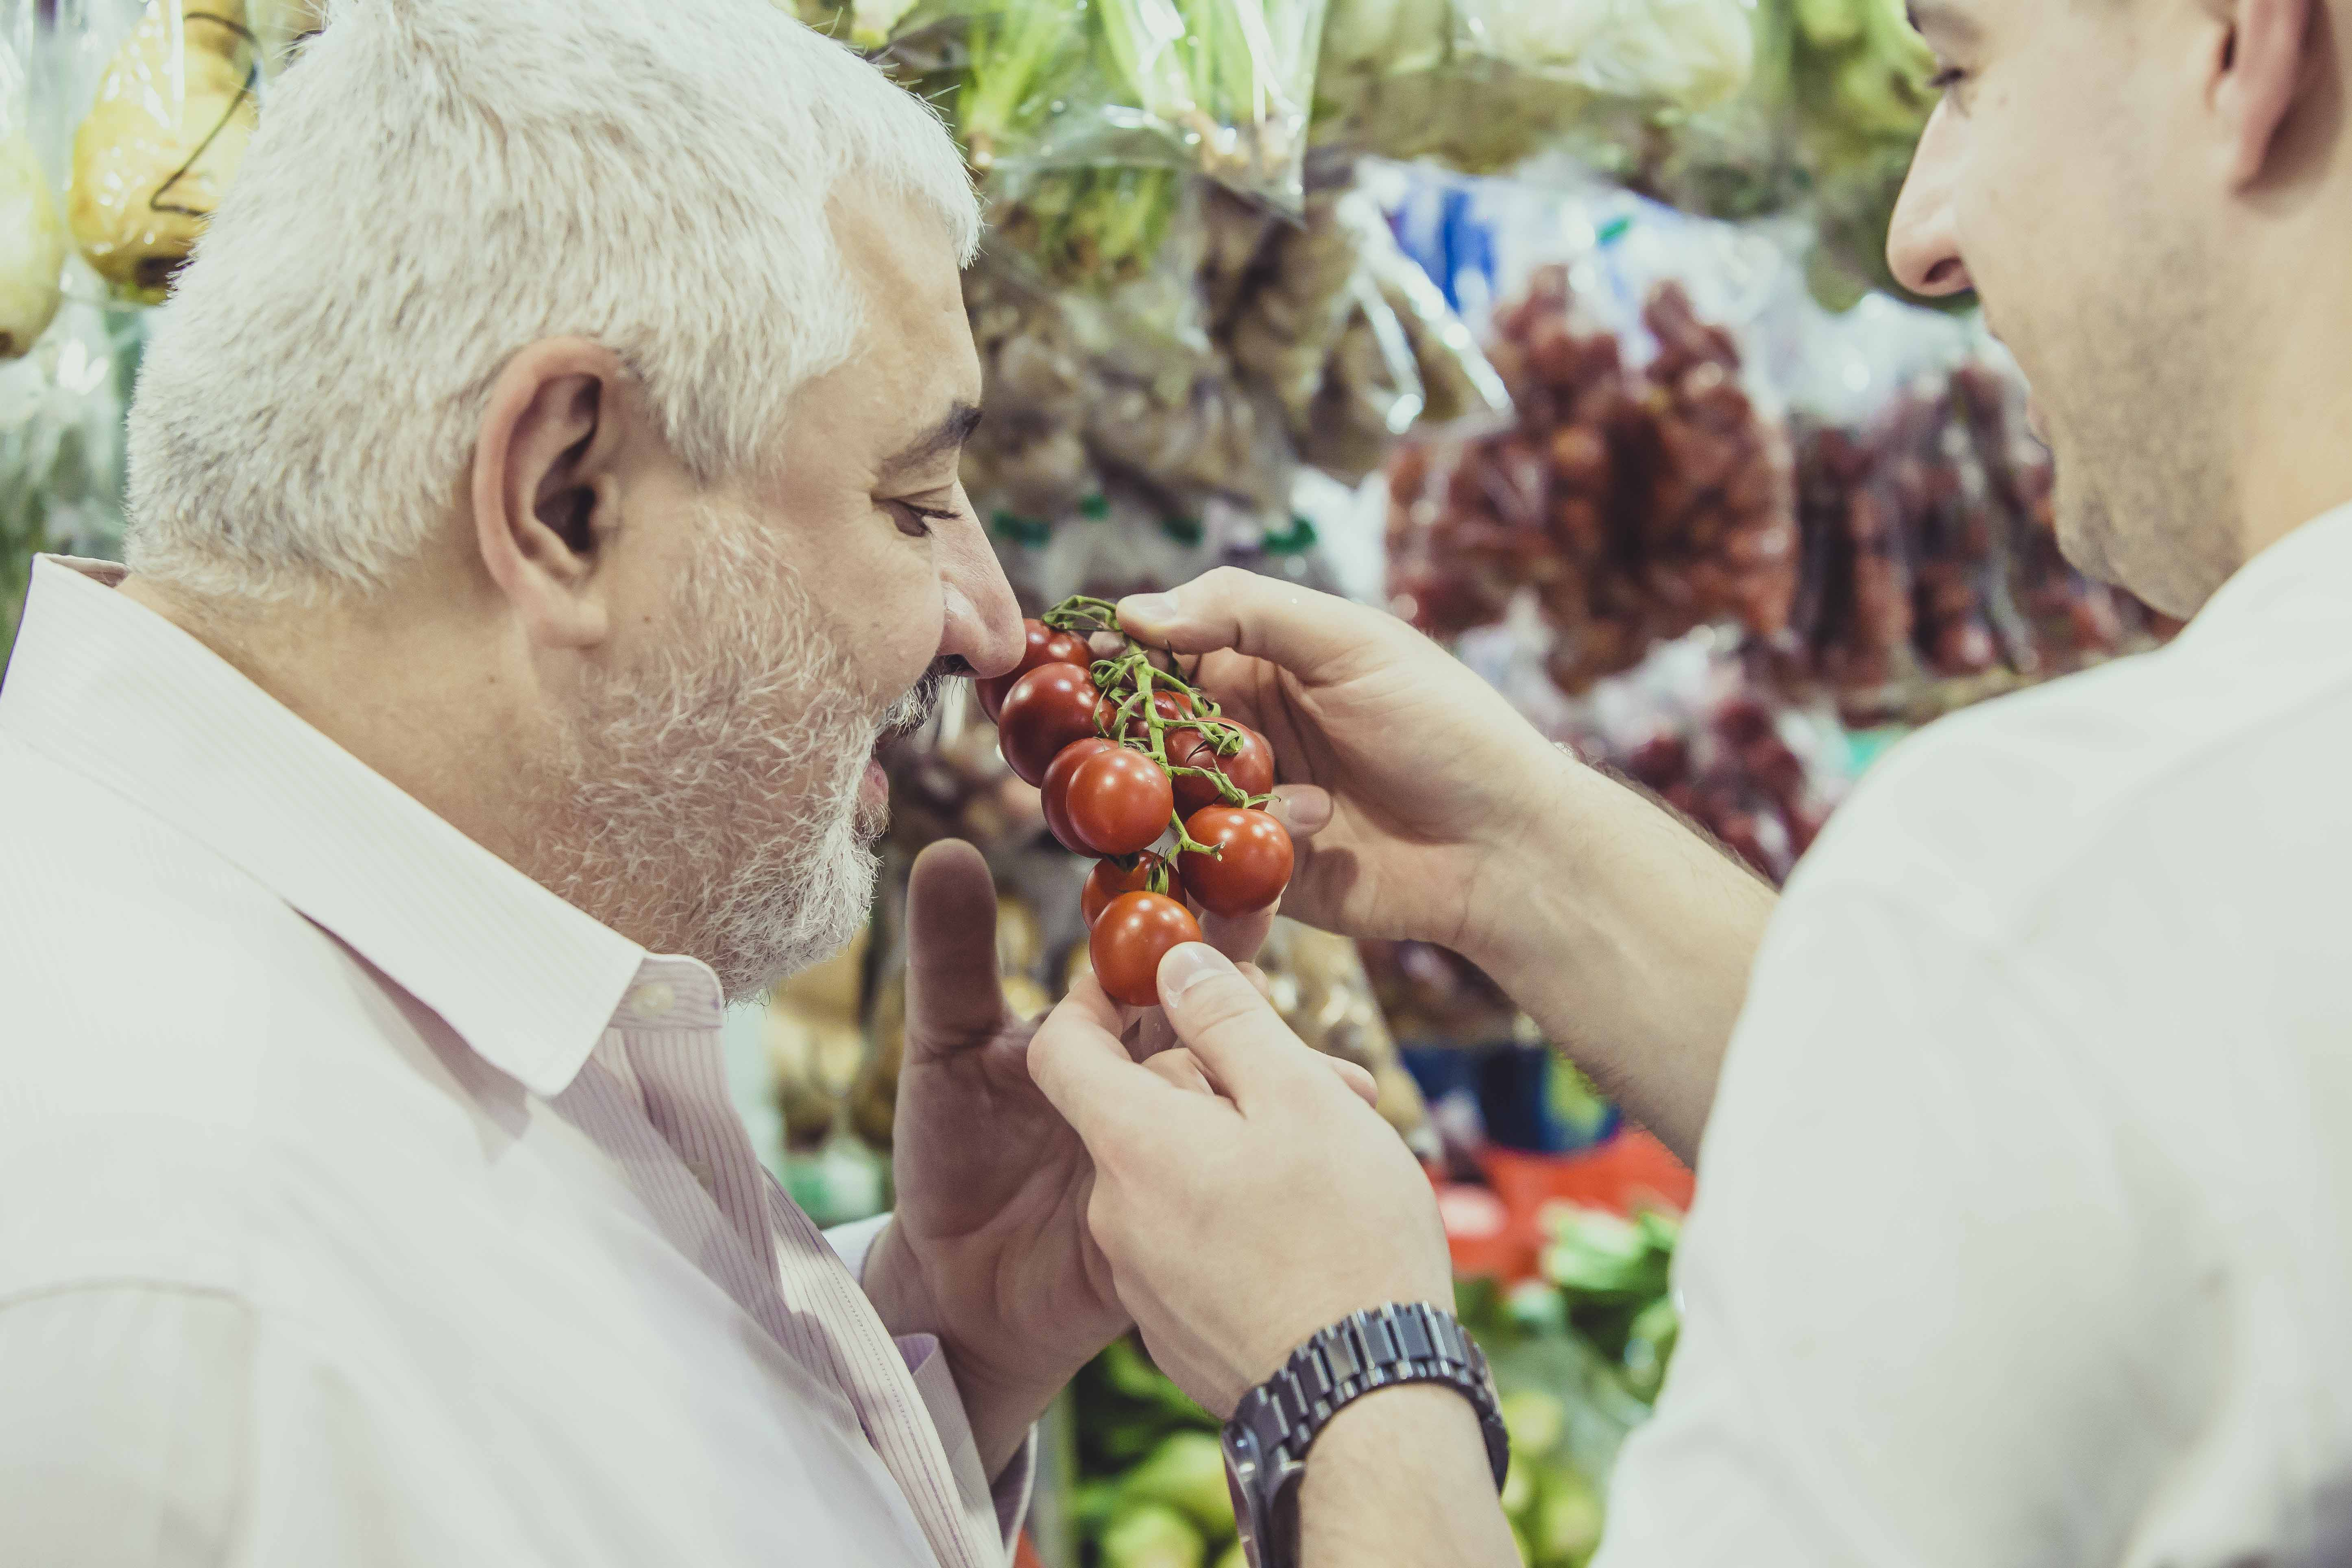 Get up close and personal with your vegetables